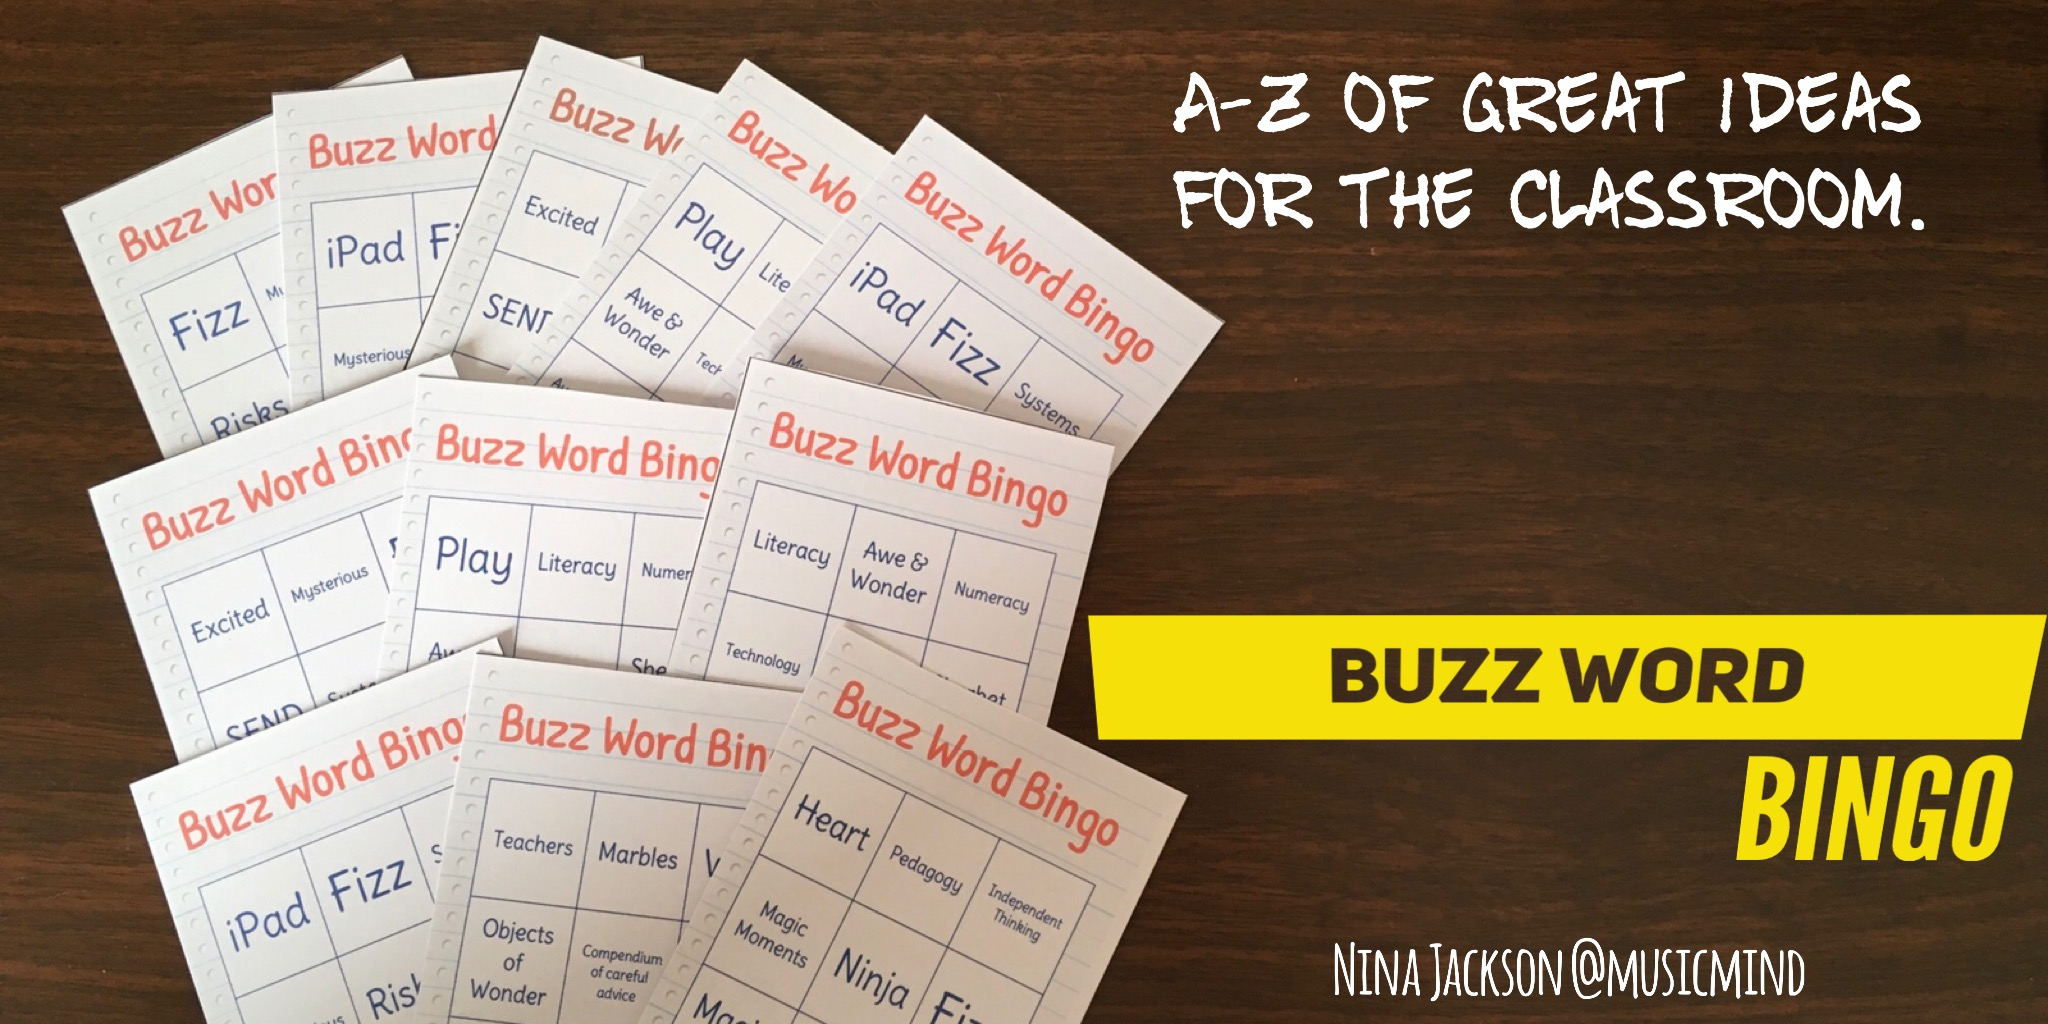 A-Z of great ideas for the classroom – Buzz Word BINGO